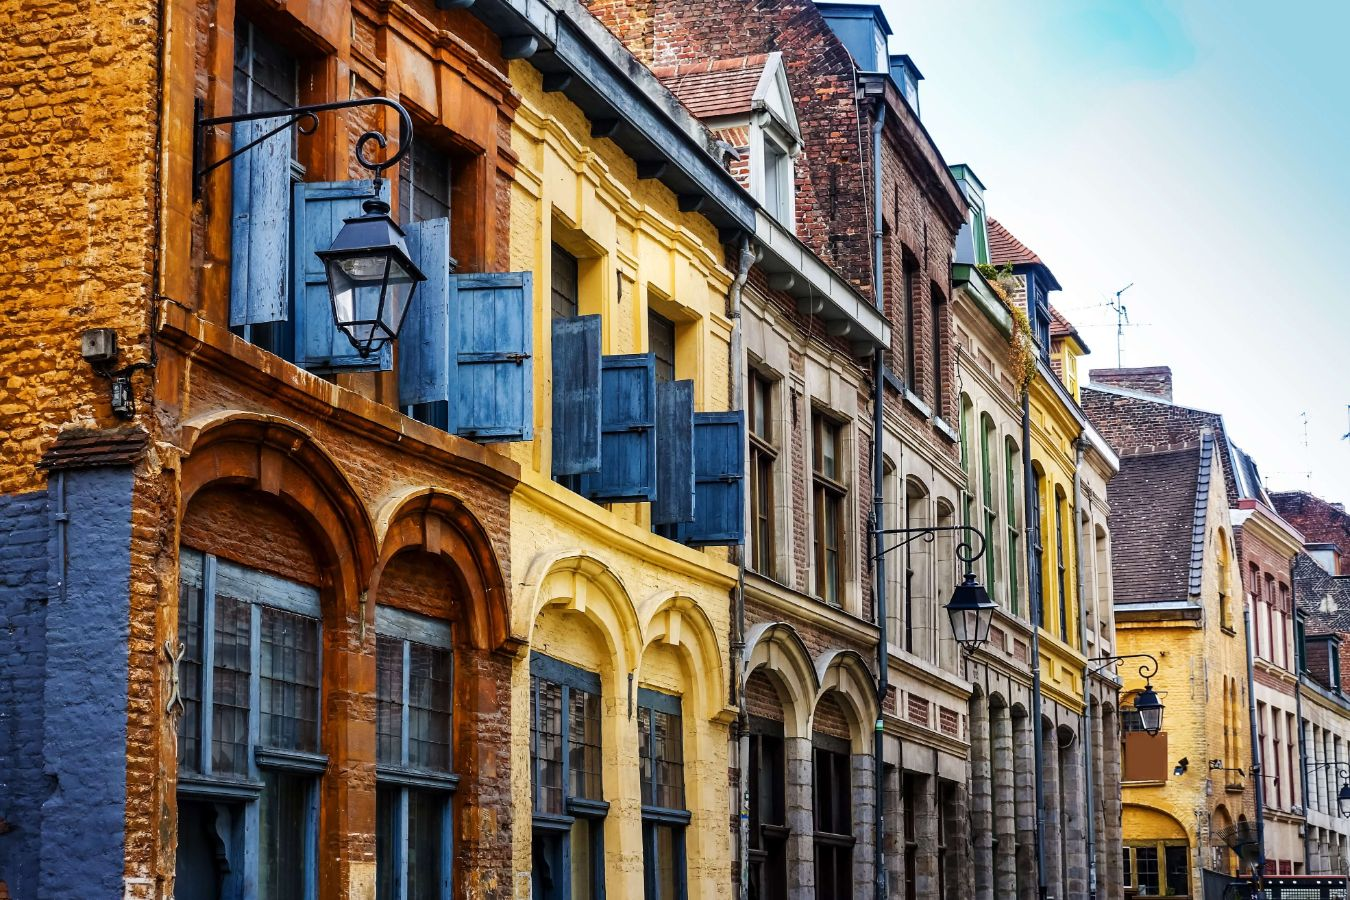 France - Hauts-de-France - Lille - Maisons colorés